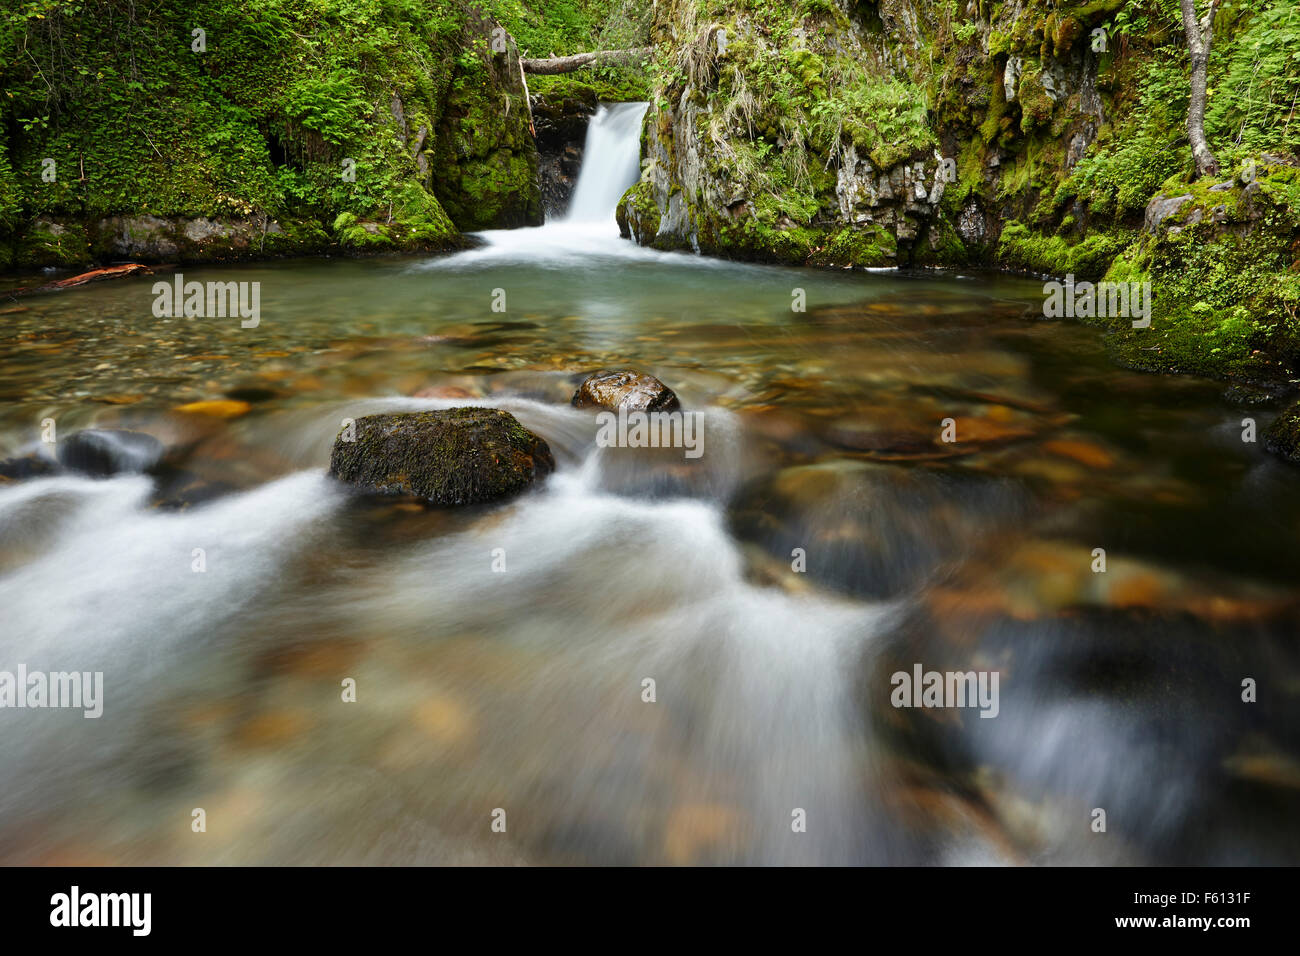 Stream, waterfall in rainforest, Tierra del Fuego National Park, Argentina - Stock Image